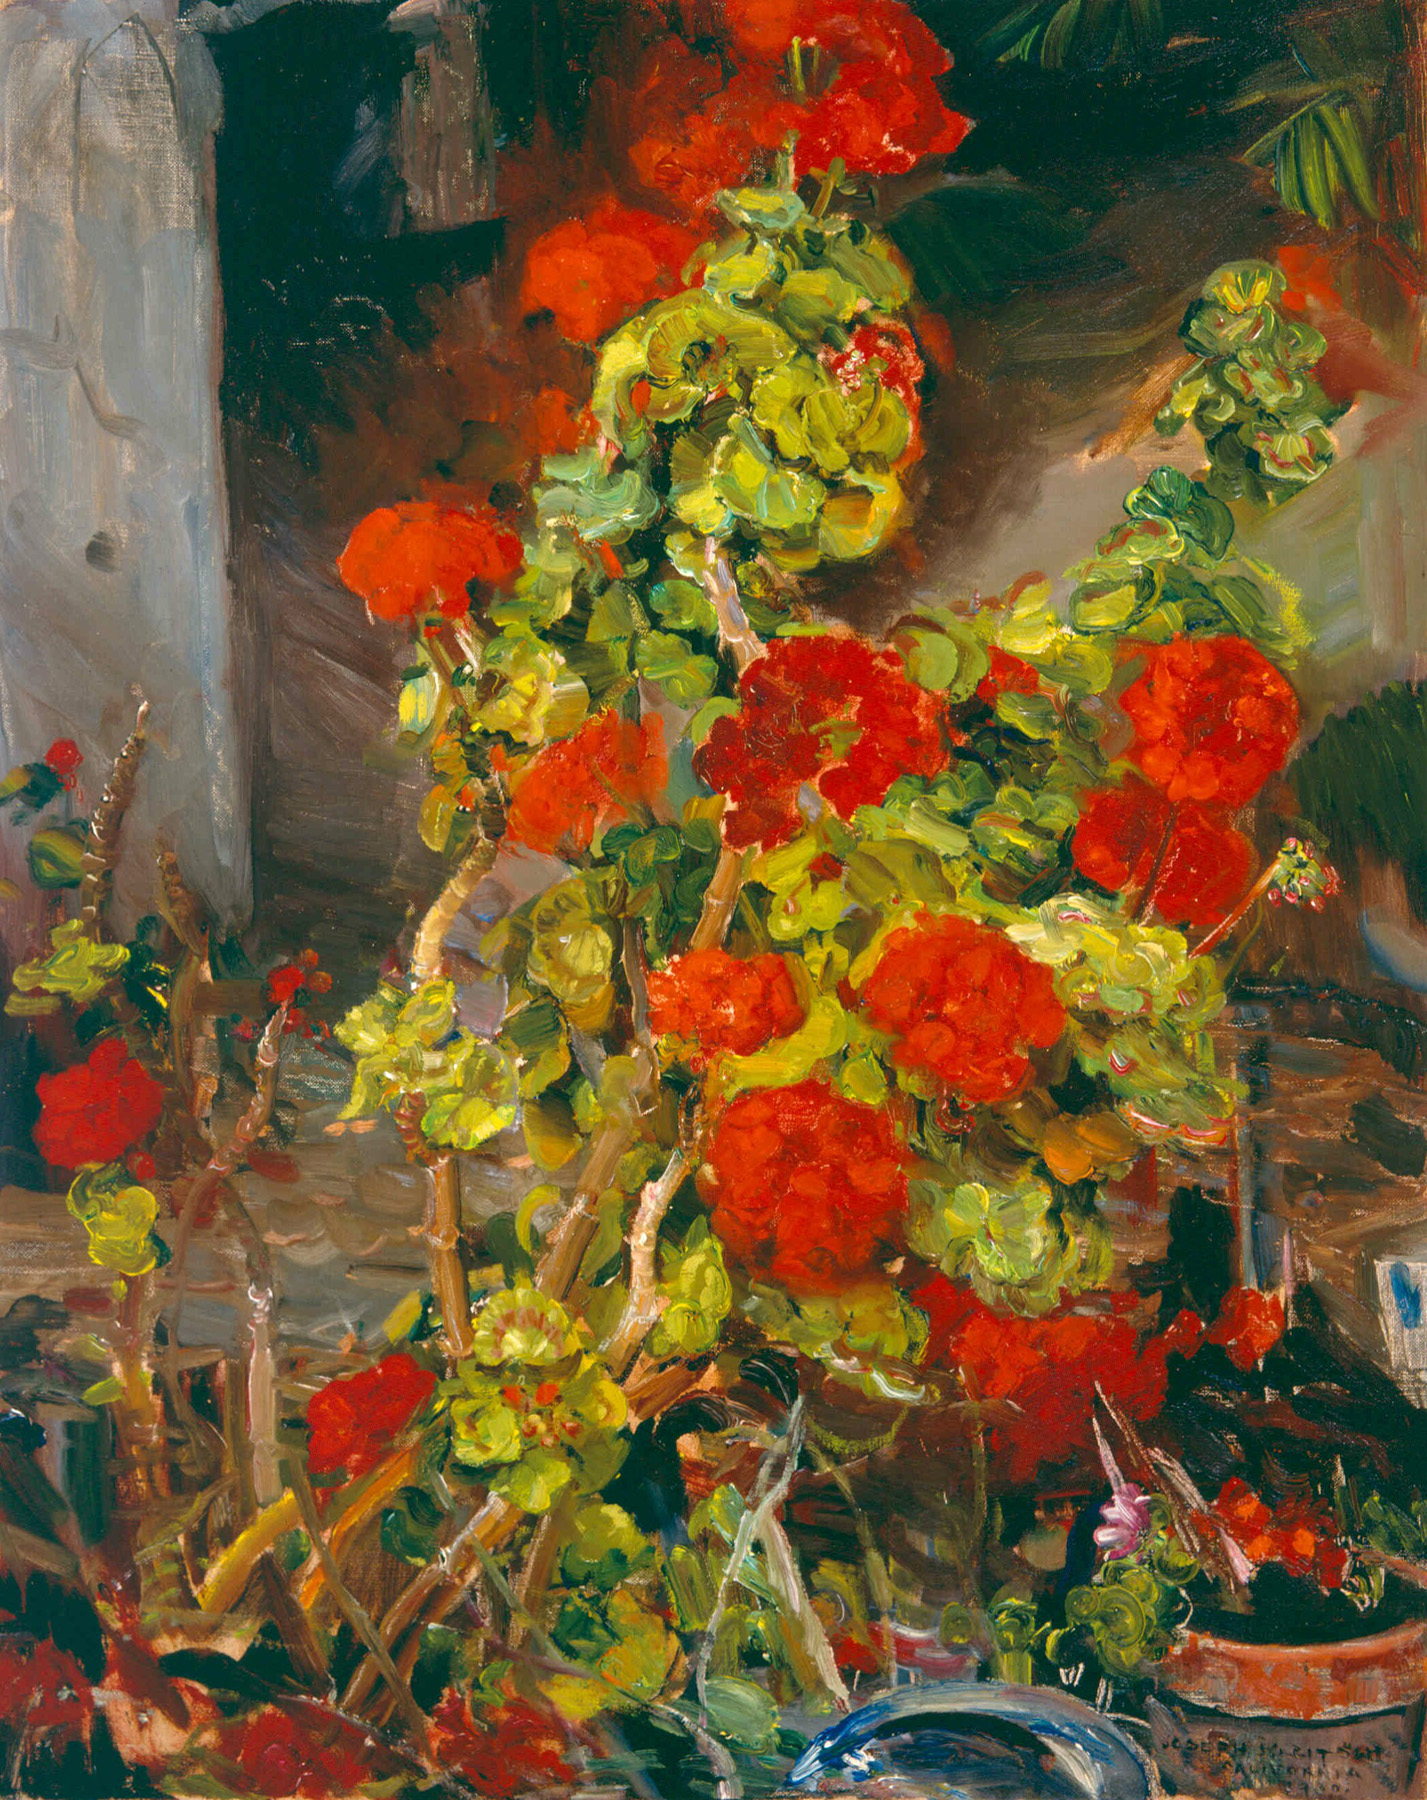 Geraniums   / Oil on Canvas, 30 x 24 in. / Private Collection